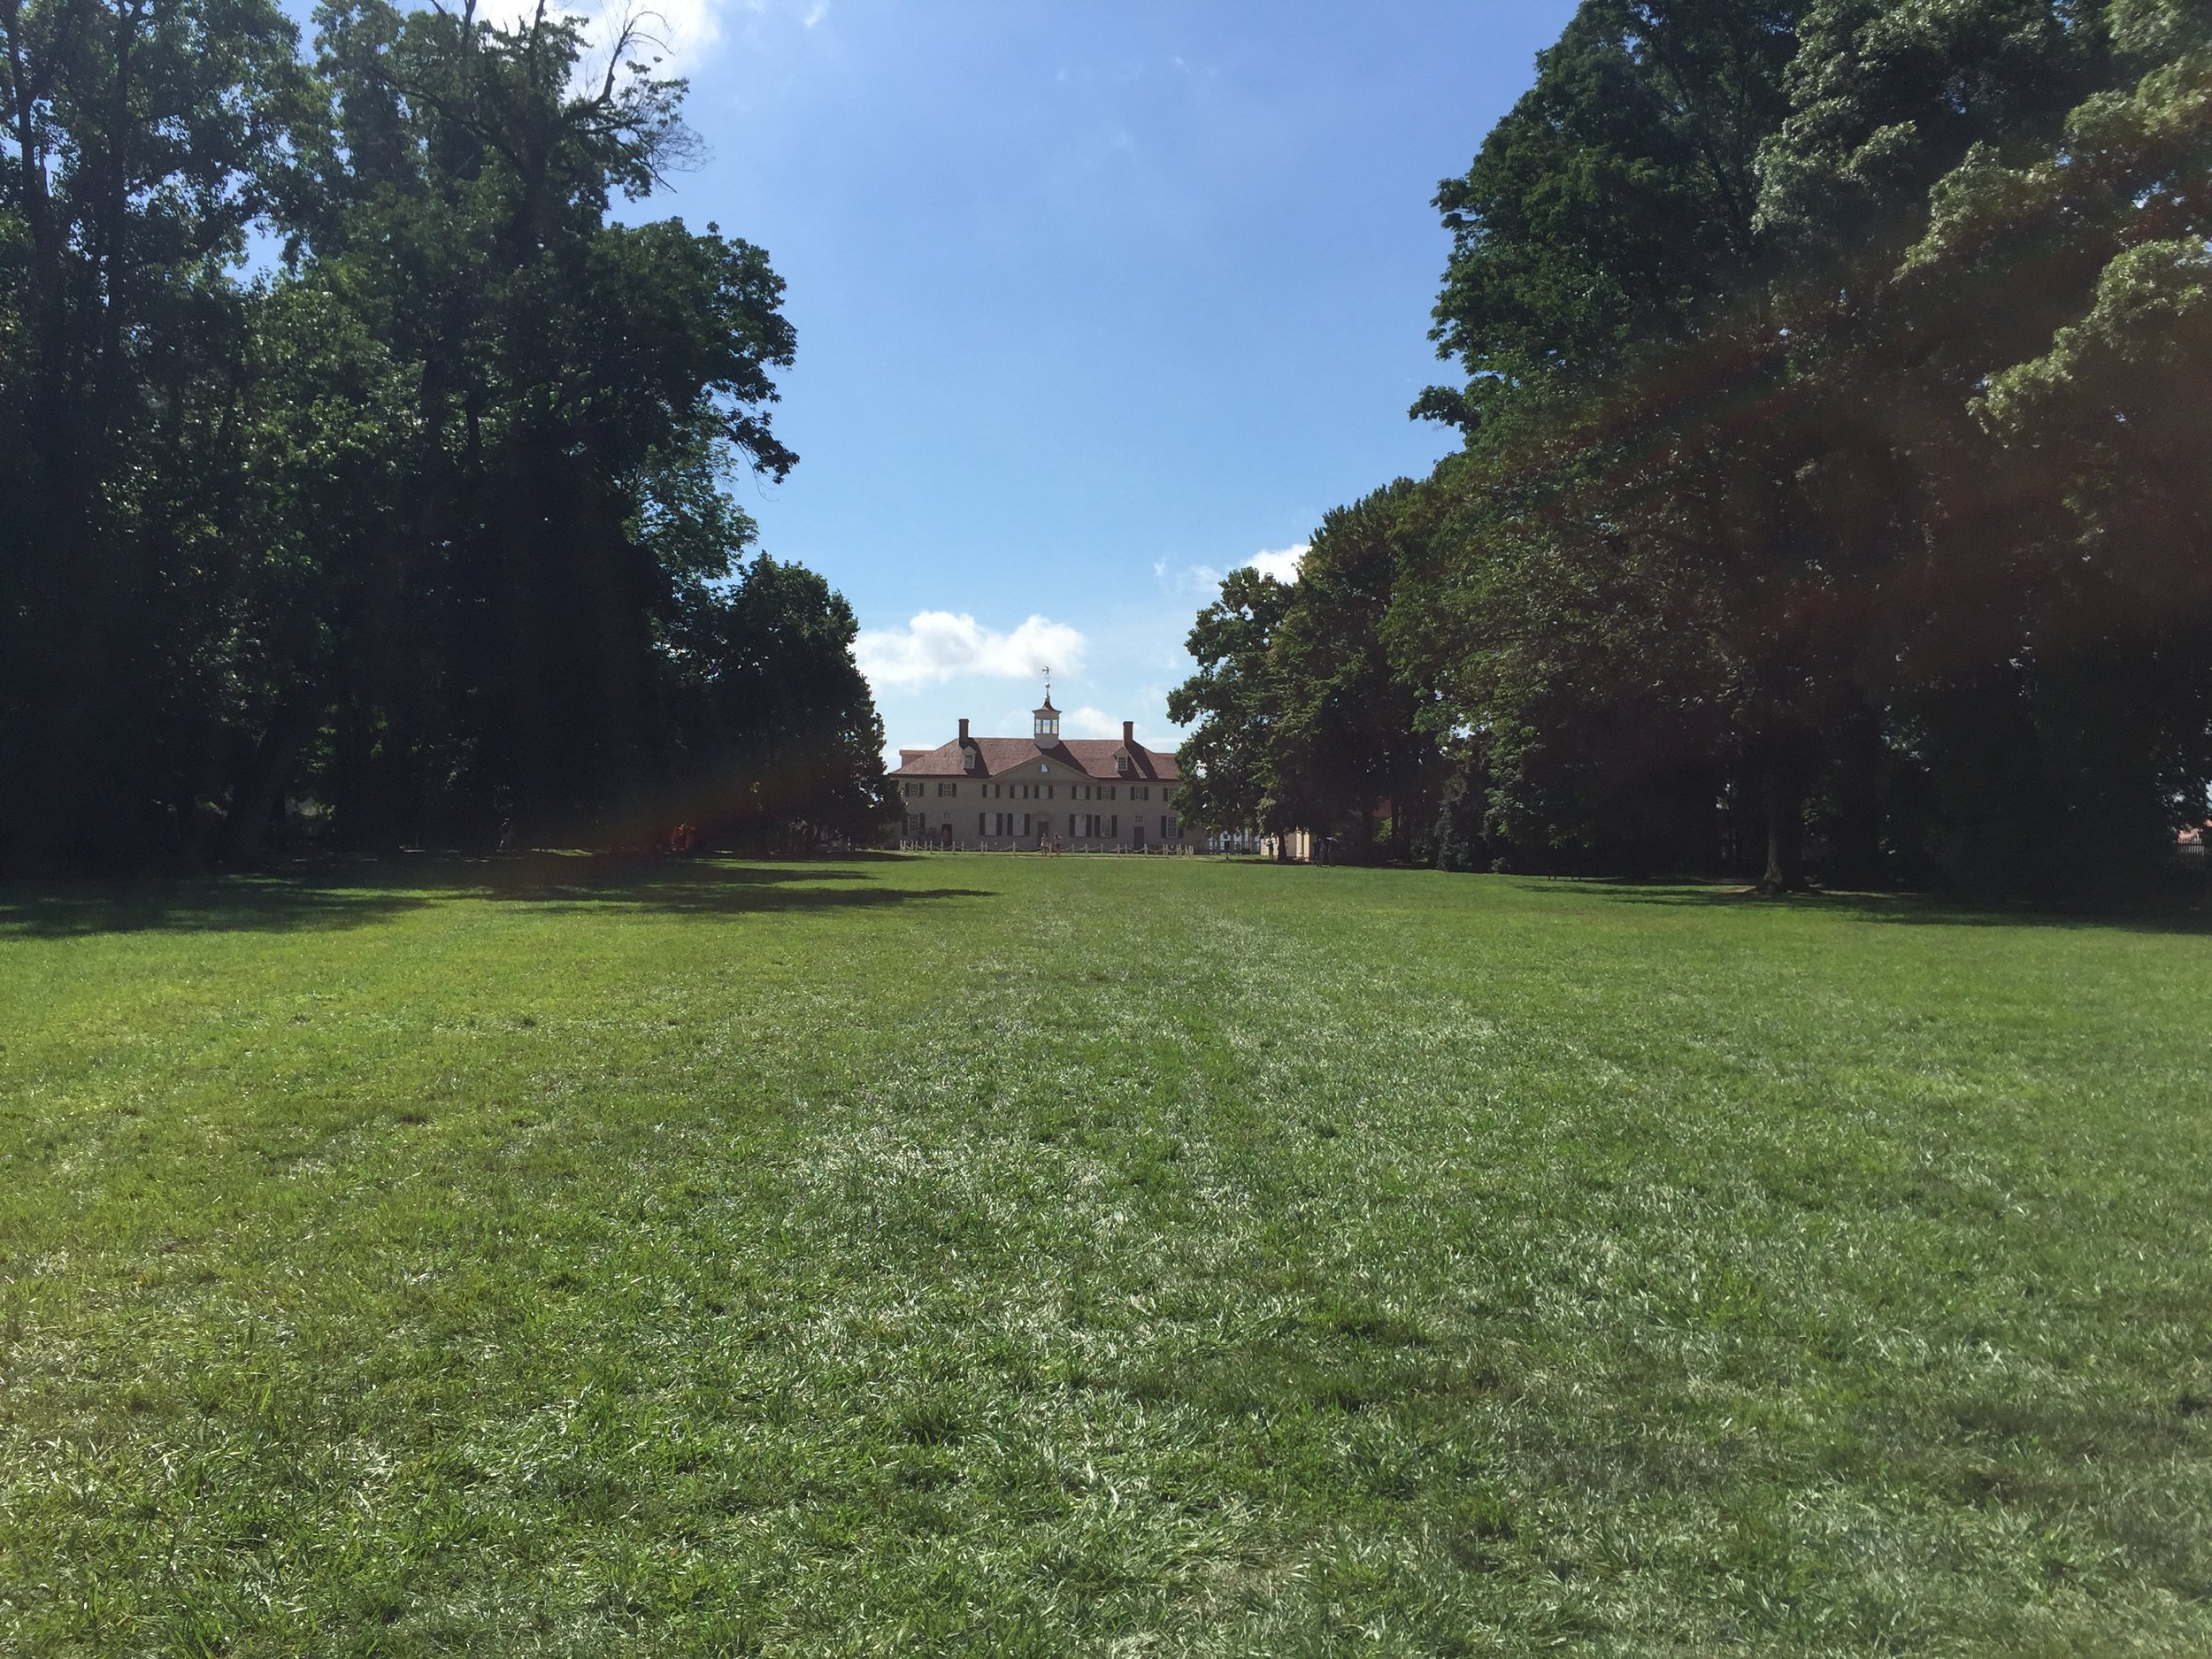 The massive front lawn at Mount Vernon.